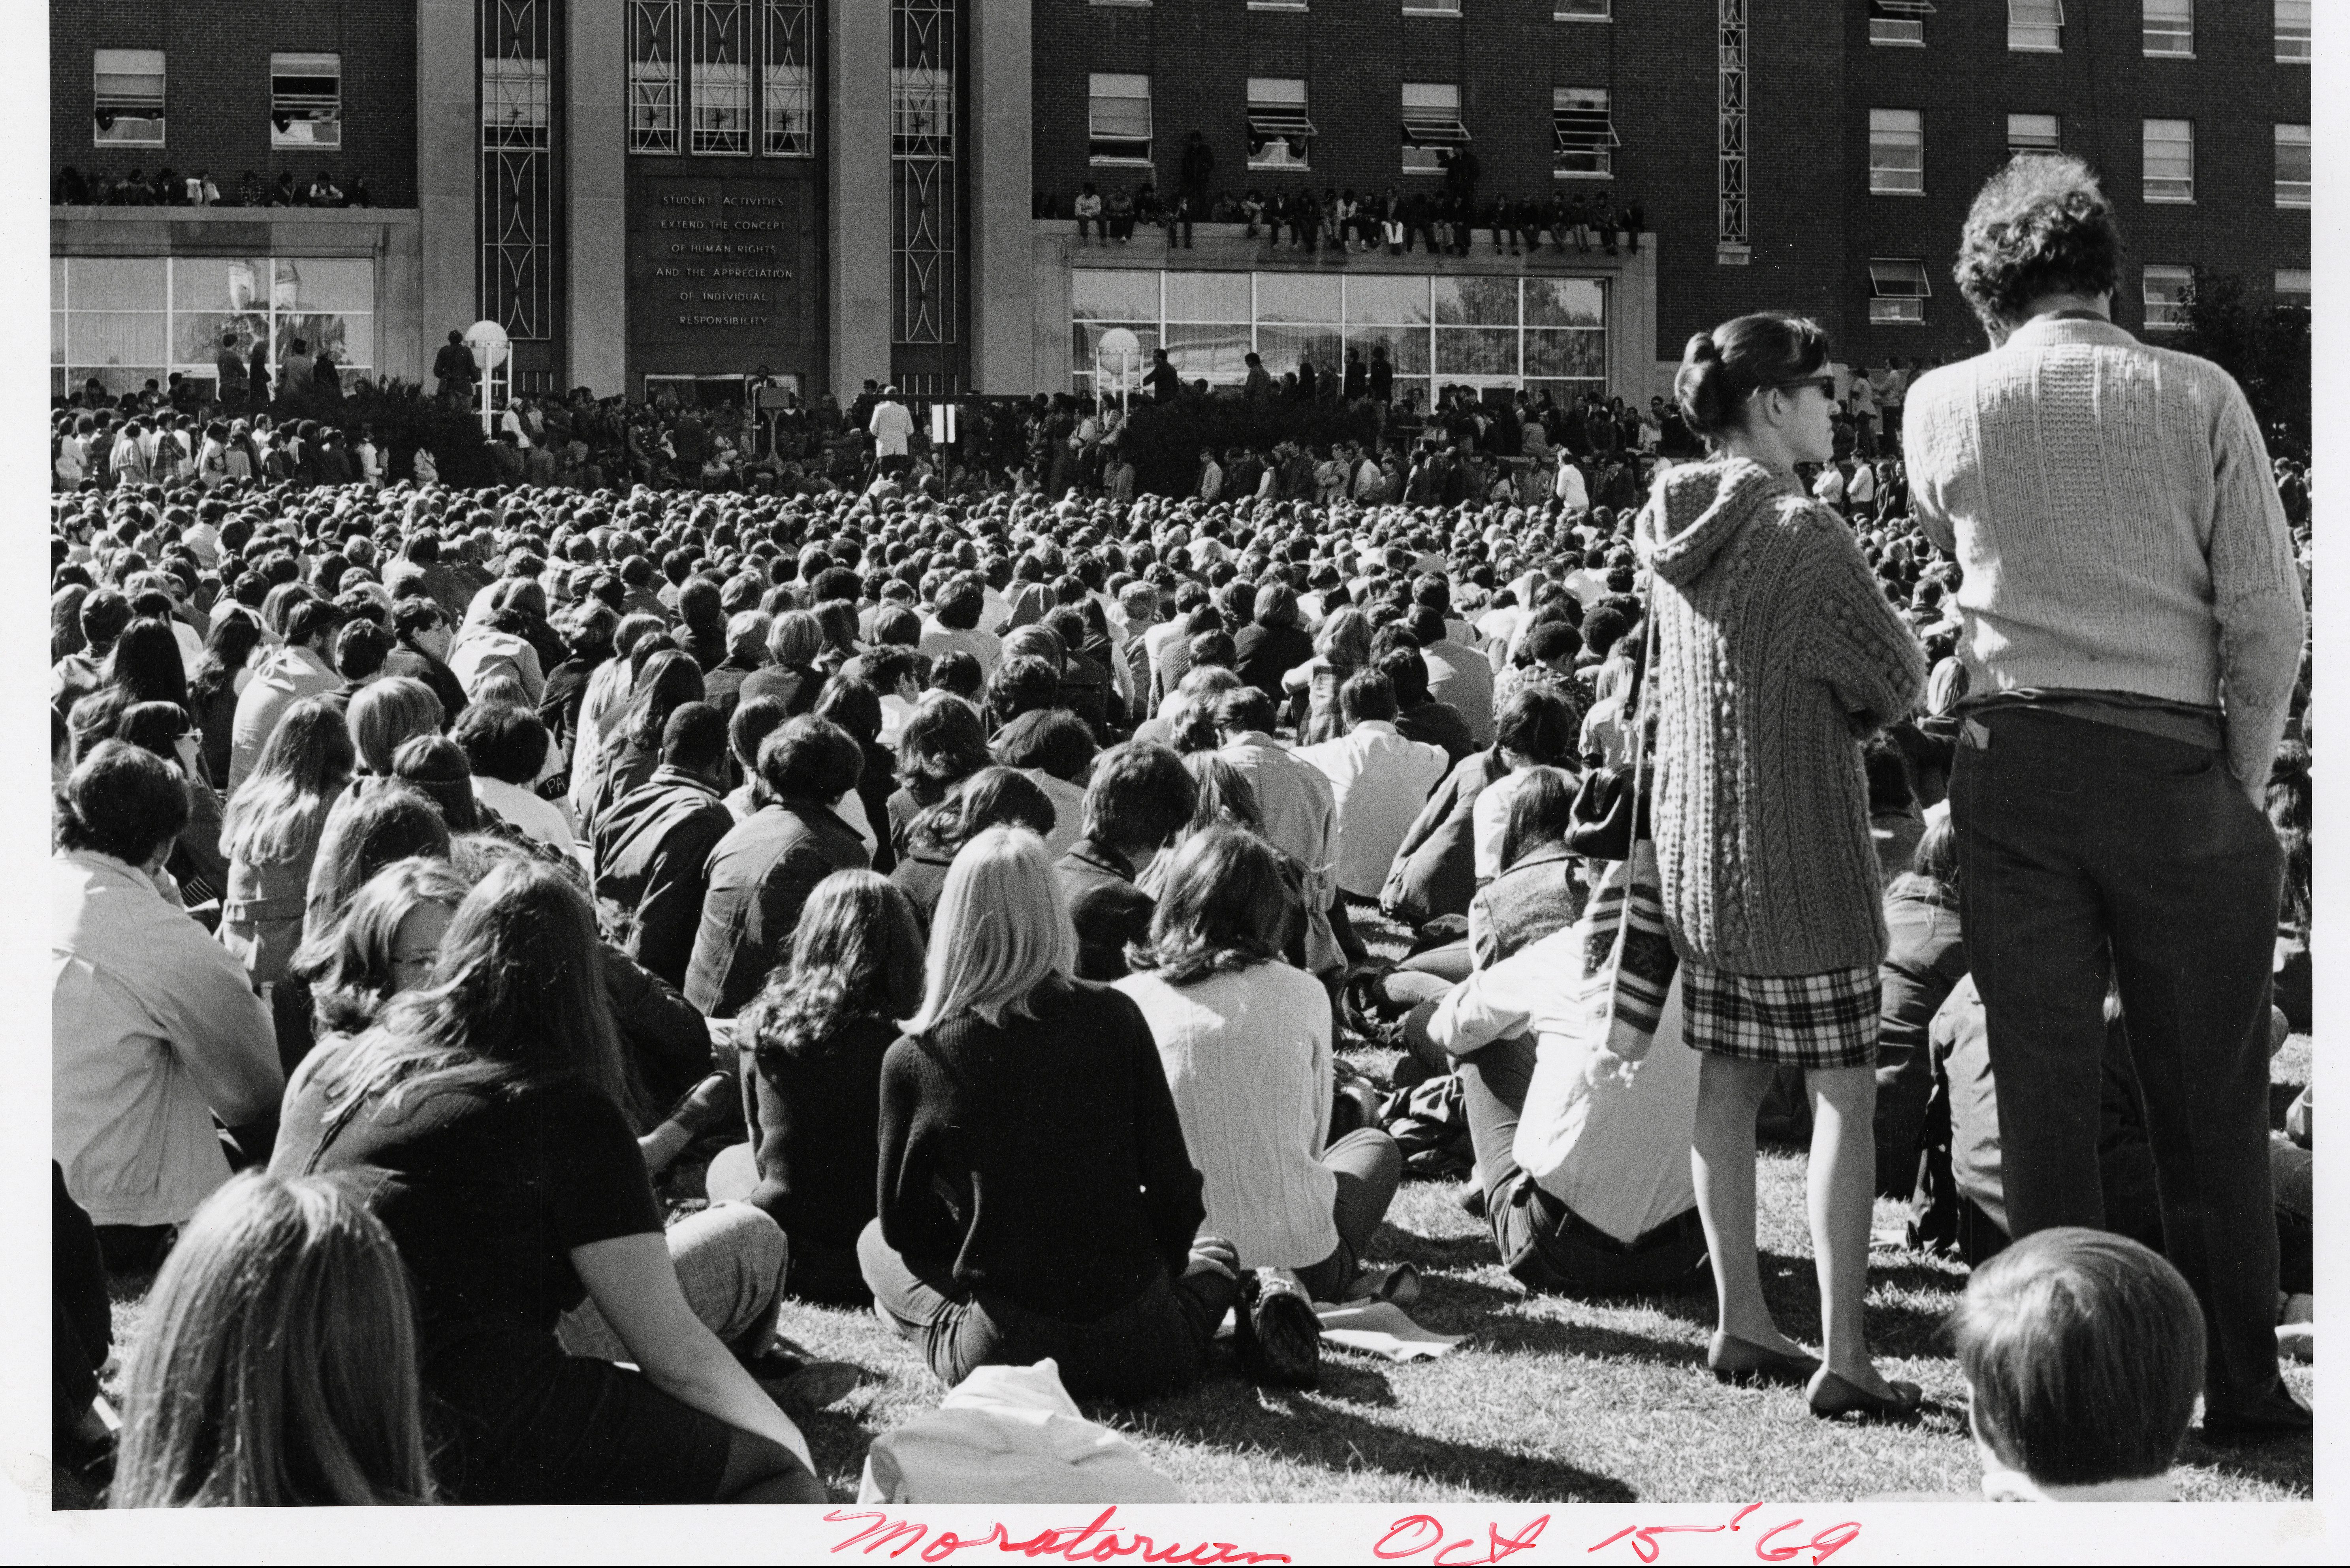 Black and white photo showing a crowd of people listening to speakers in front of the UConn Student Union in 1969